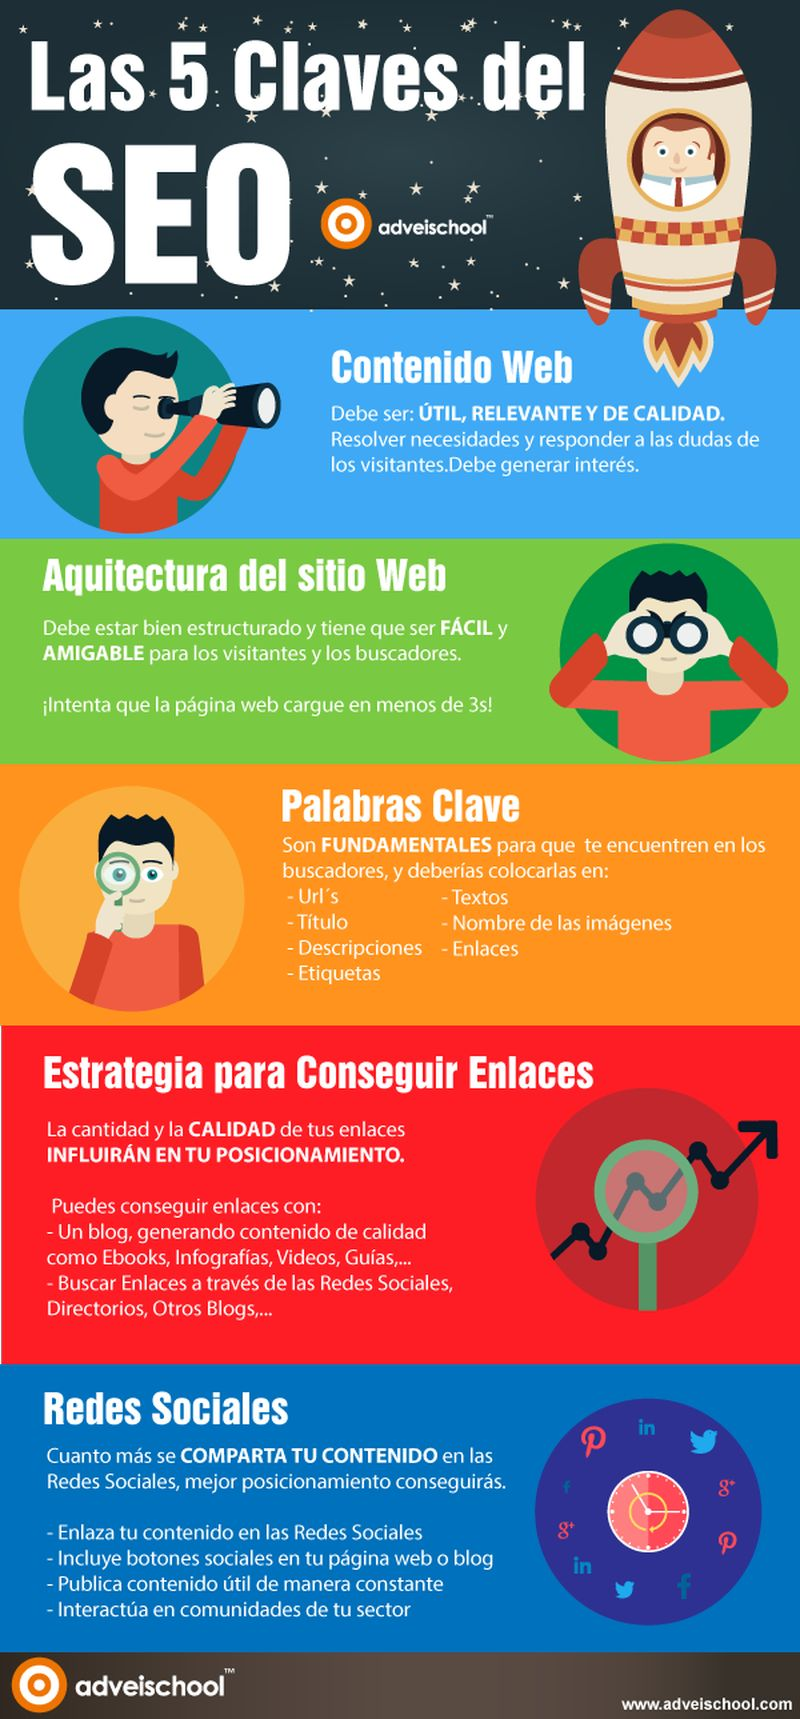 Tendencias en SEO para Youtube. Claves